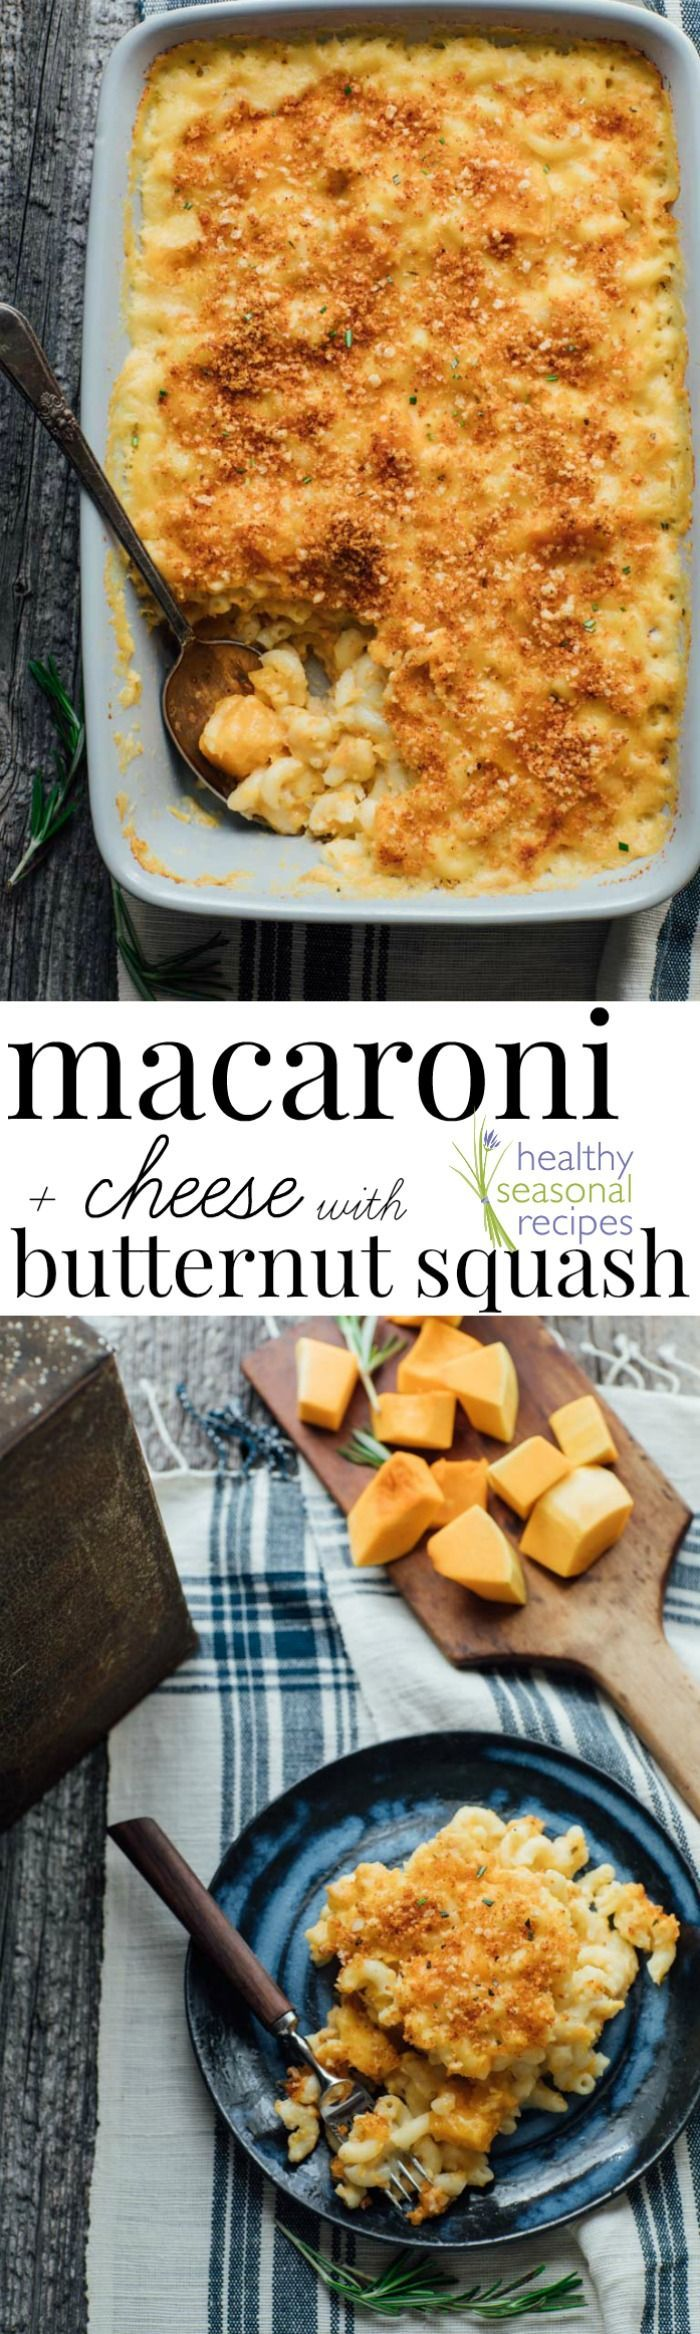 This macaroni and cheese with butternut squash is a healthy make-over of classic macaroni and cheese  nommed-up with whole-grain pasta, gruyere cheese, rosemary and loads and loads of butternut squash! I'm telling you, it's the most perfect comfort food casserole ever!!